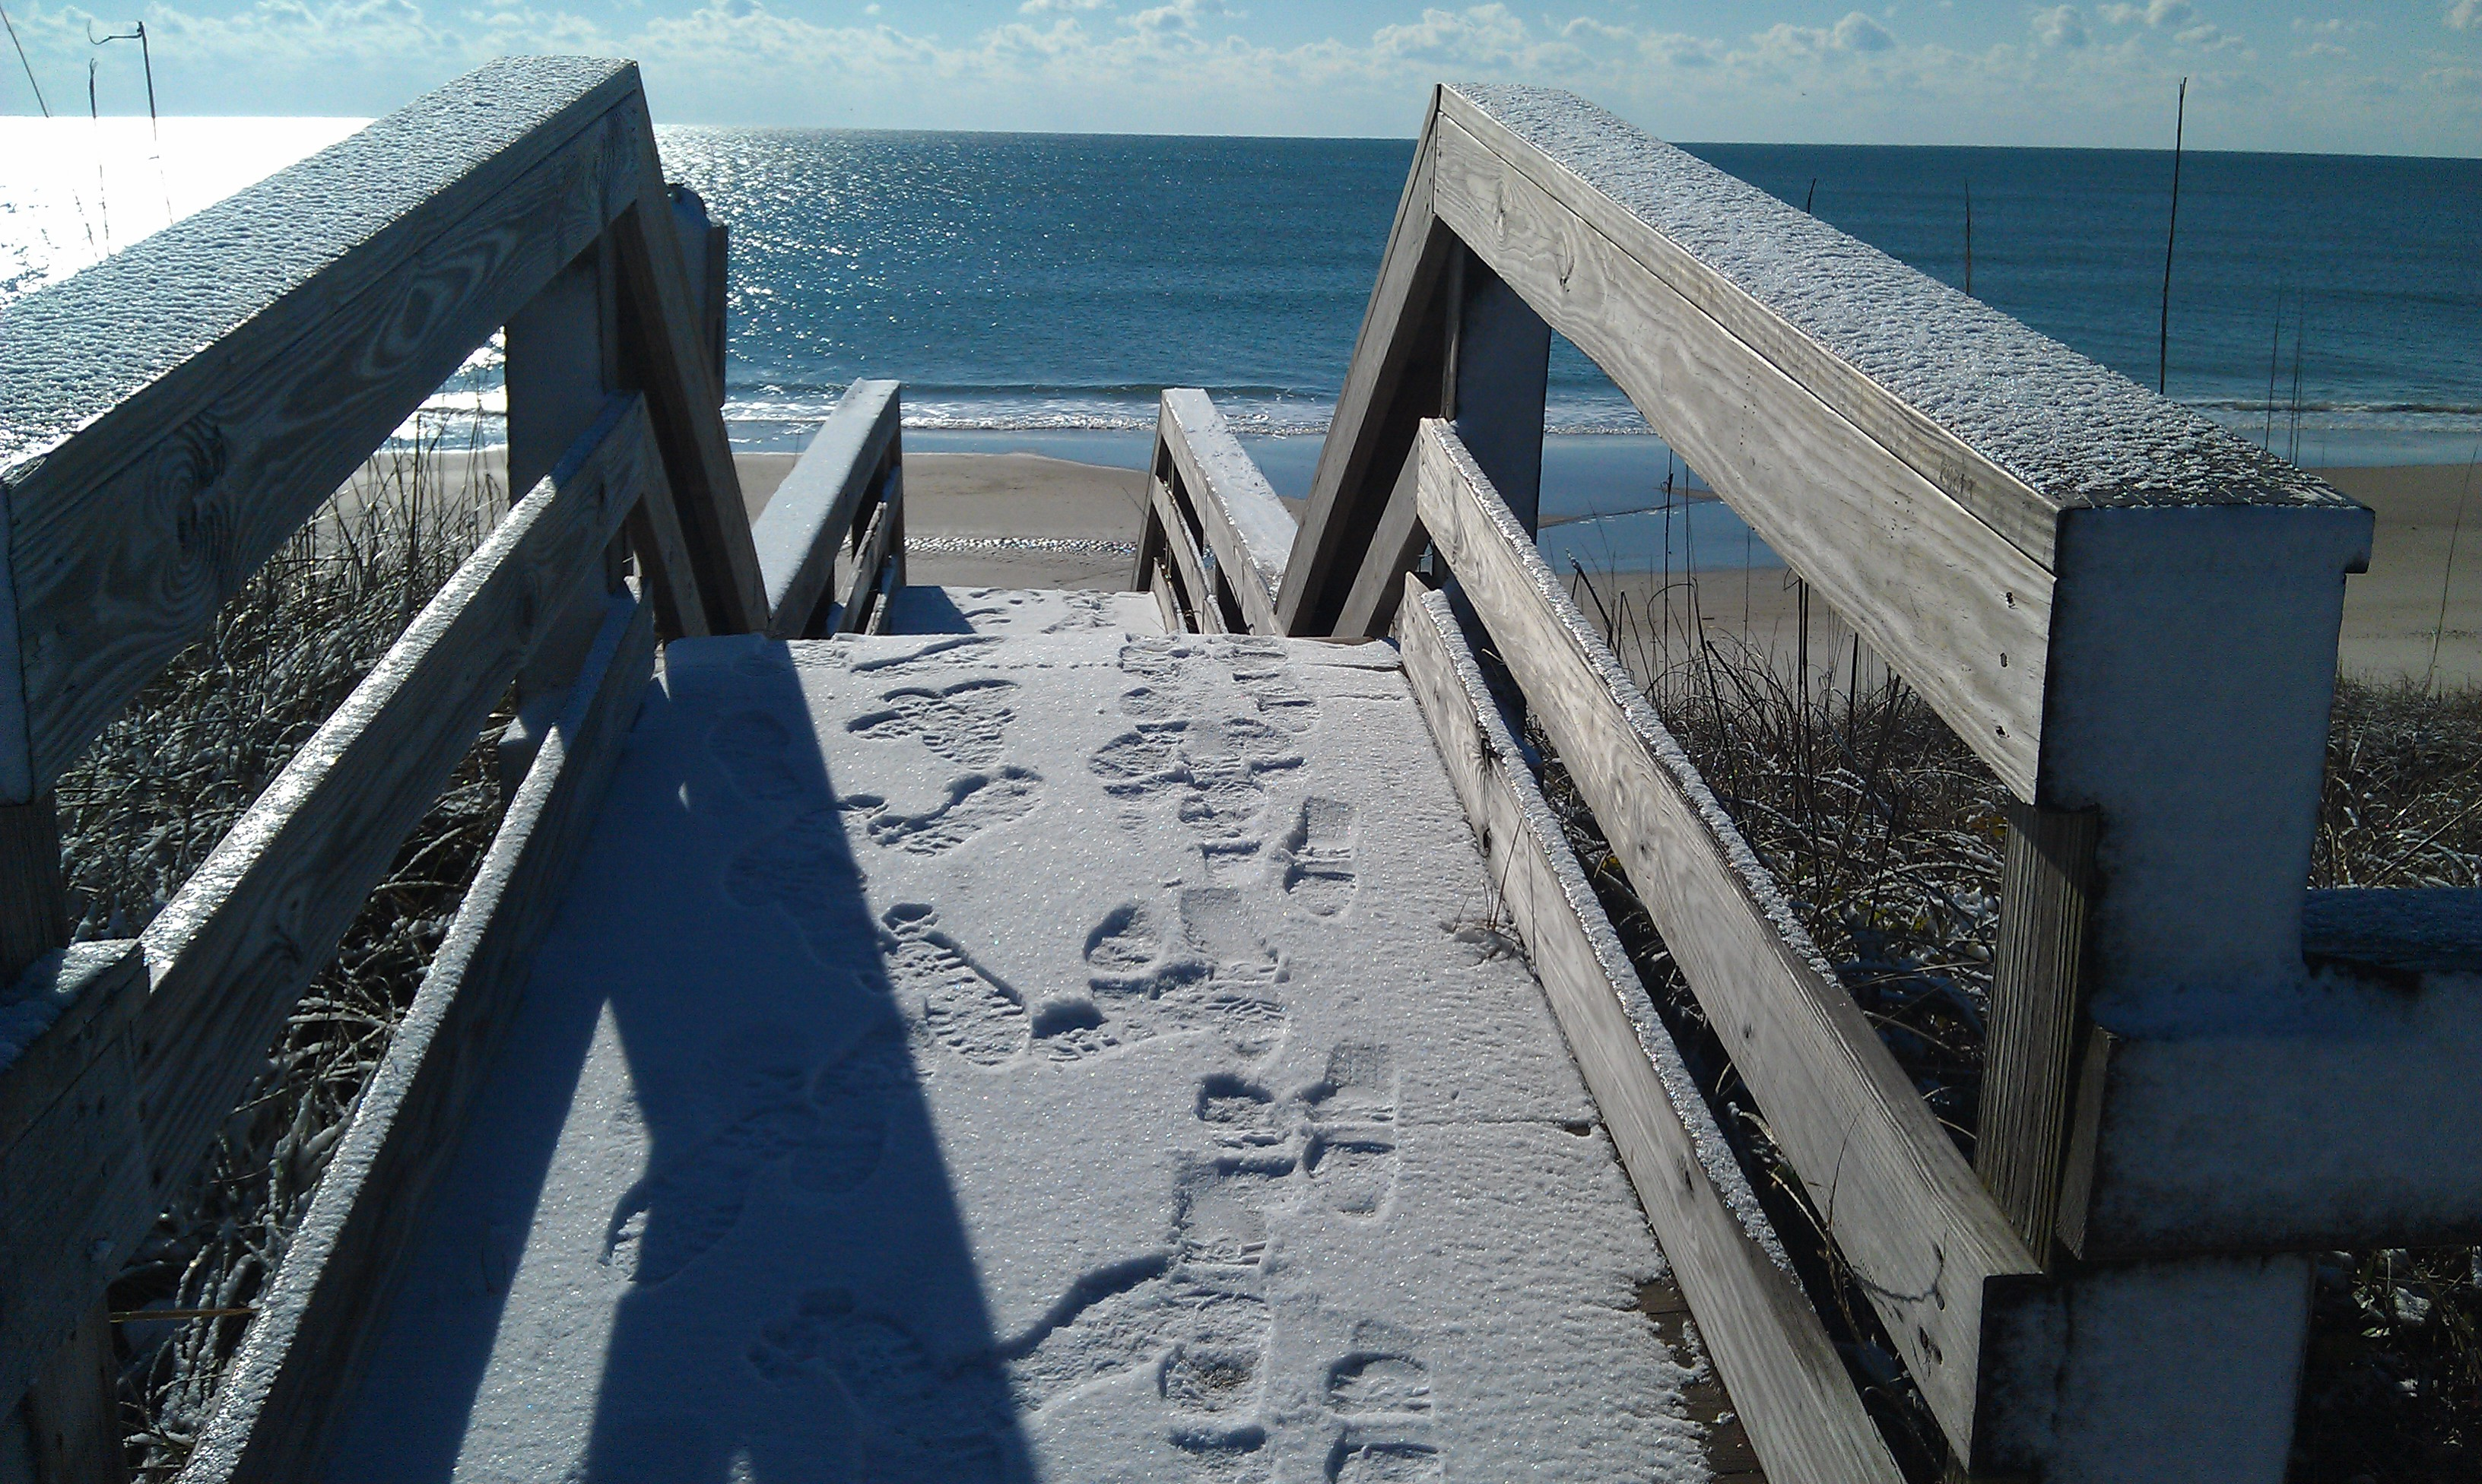 Cold Snow Covered Day at Beach Access topsail island